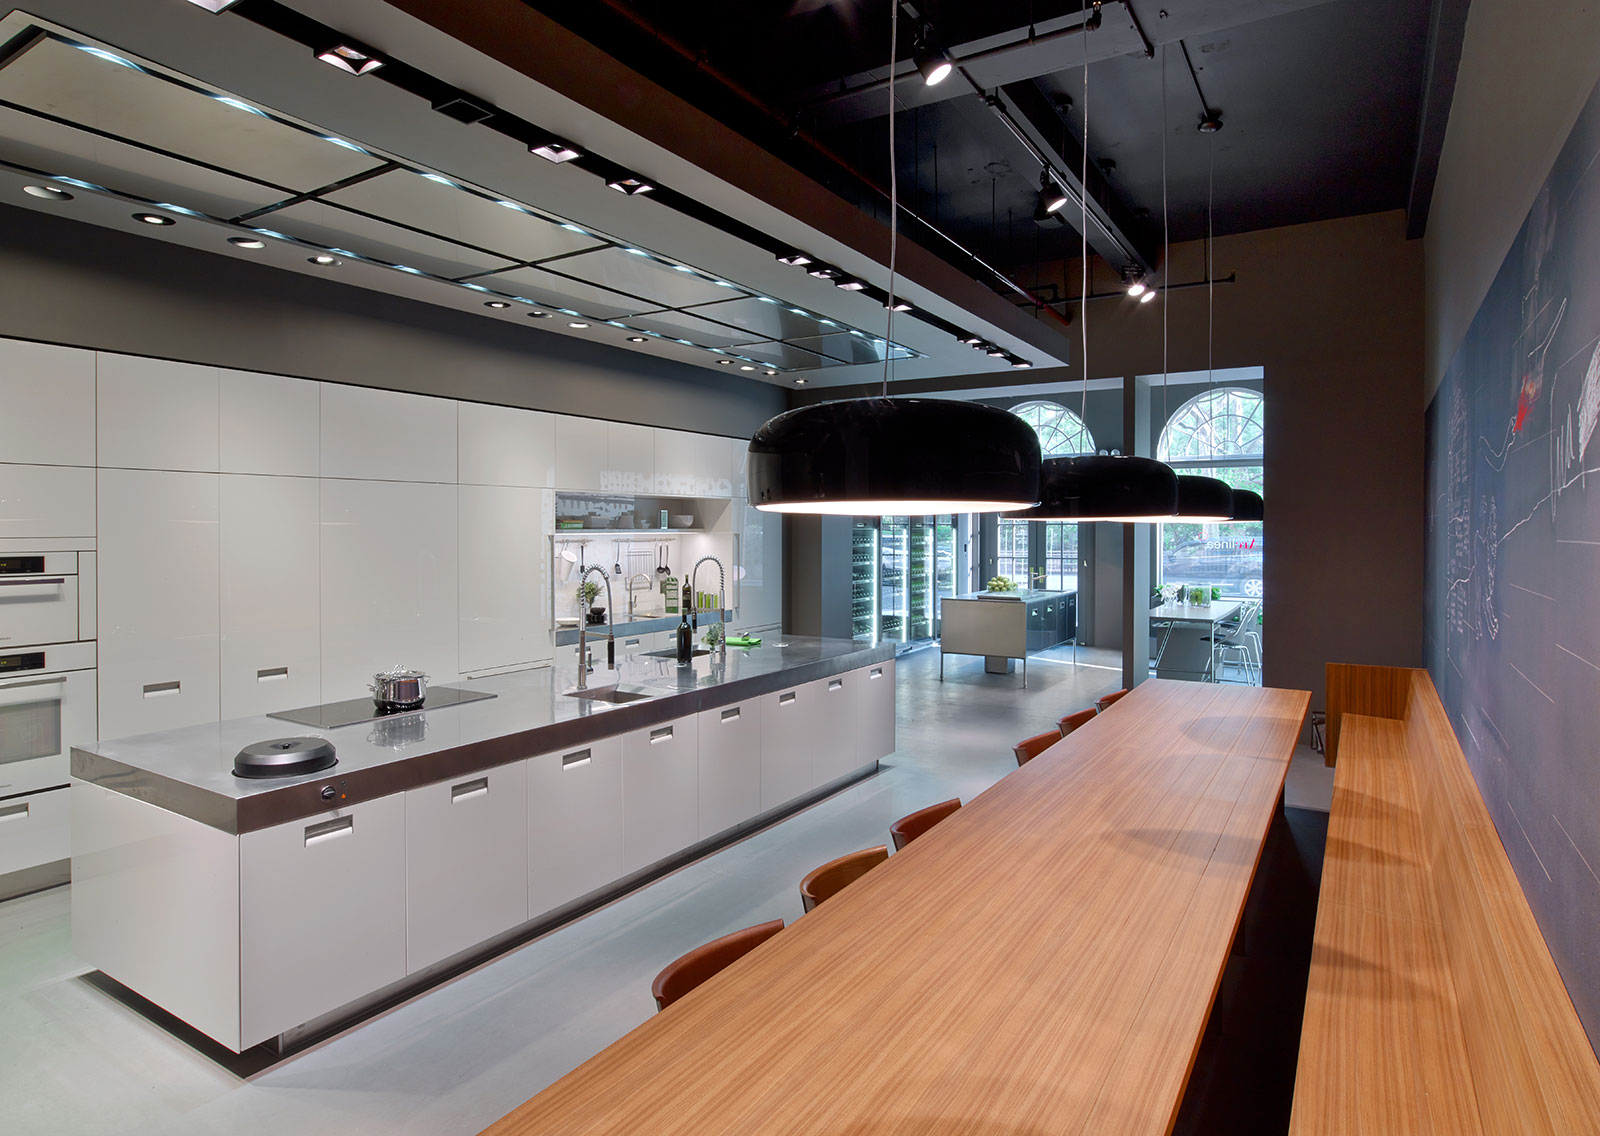 Arclinea-NYC-16-2.jpg